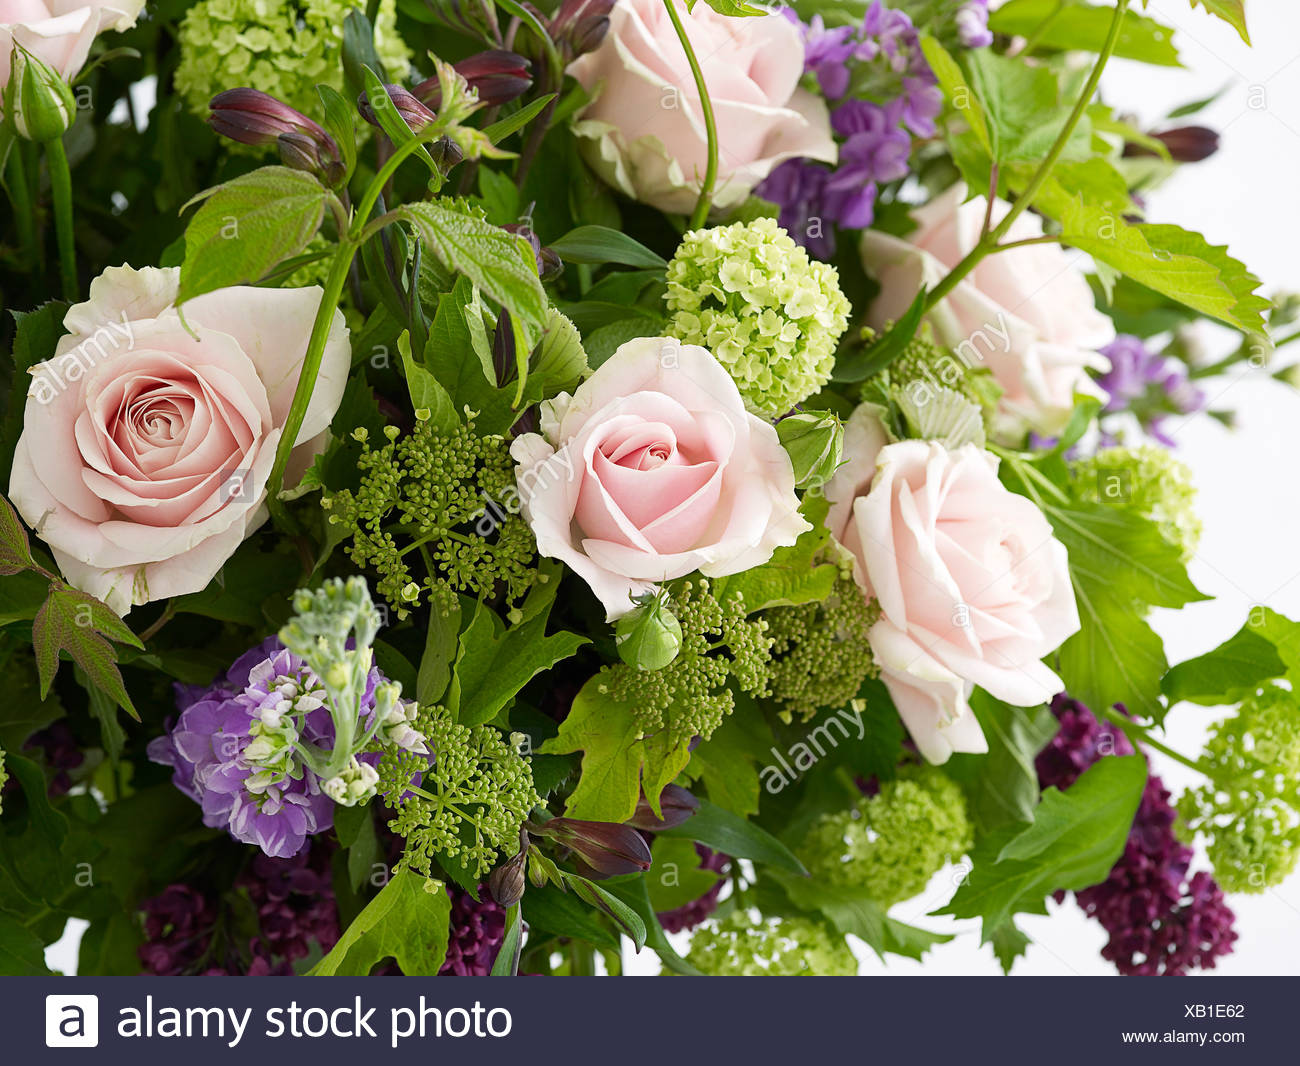 Bunch Of Flowers Including Pink Roses Stocks Lilacs Guelder And